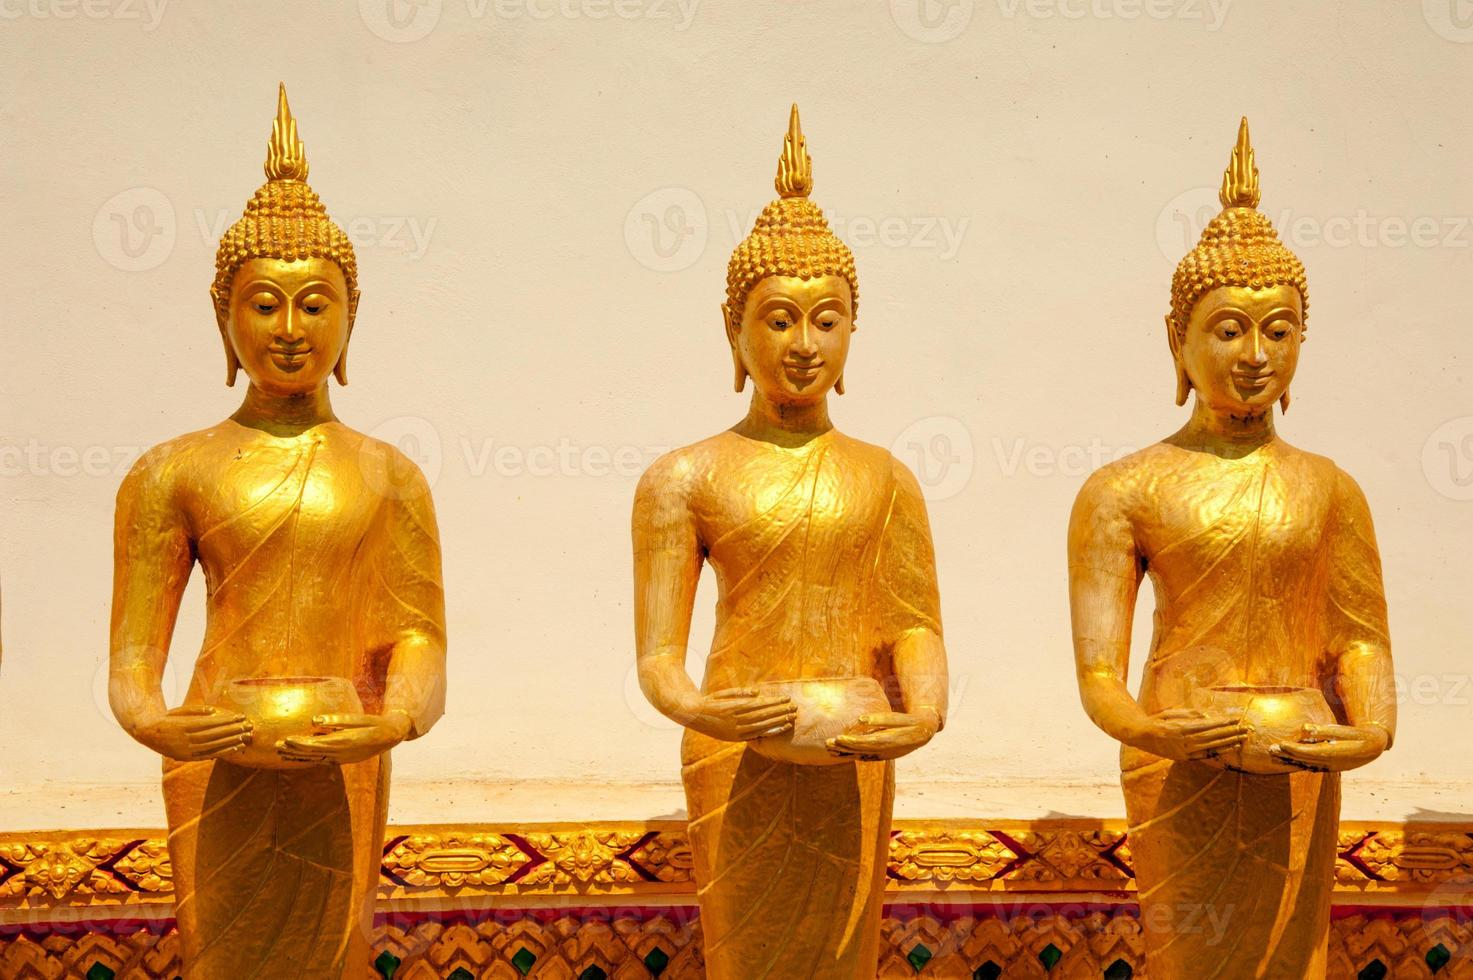 Golen buddhas buddhist culture and life style temple statues Asi photo